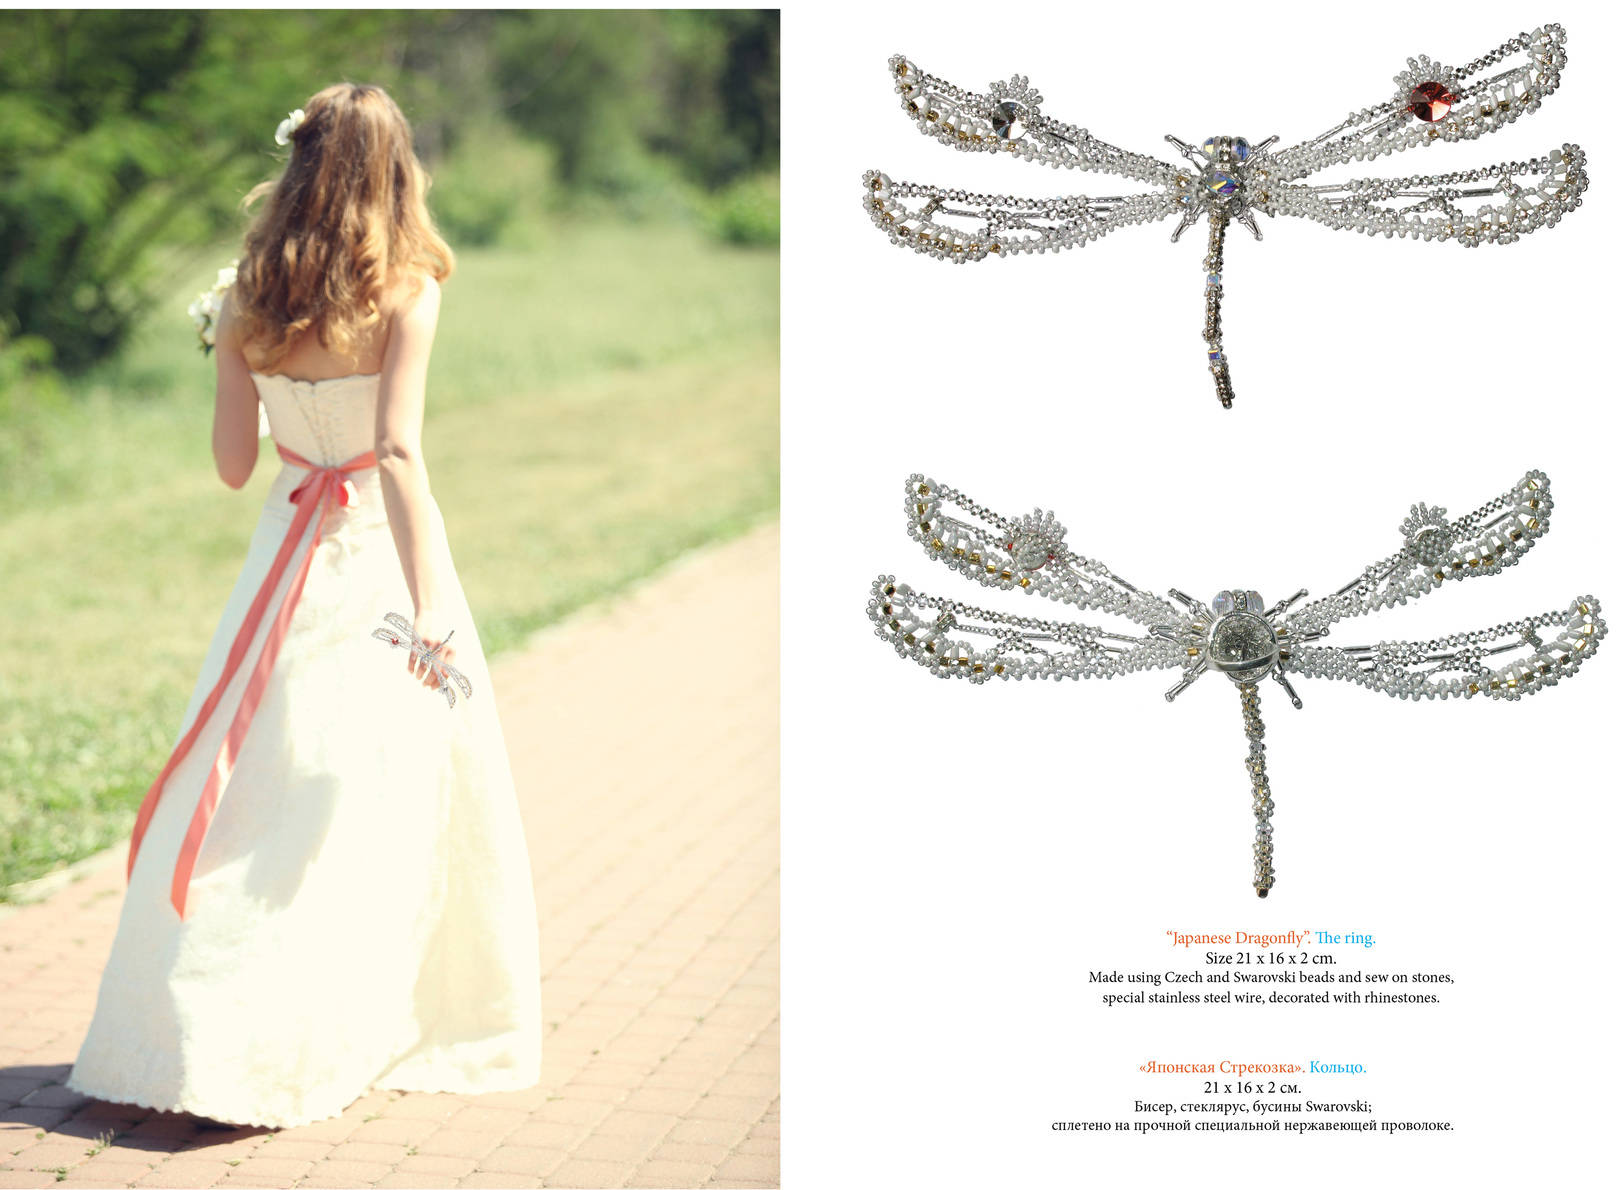 Japanese Dragonfly. The ring. Size: 210×160 mm